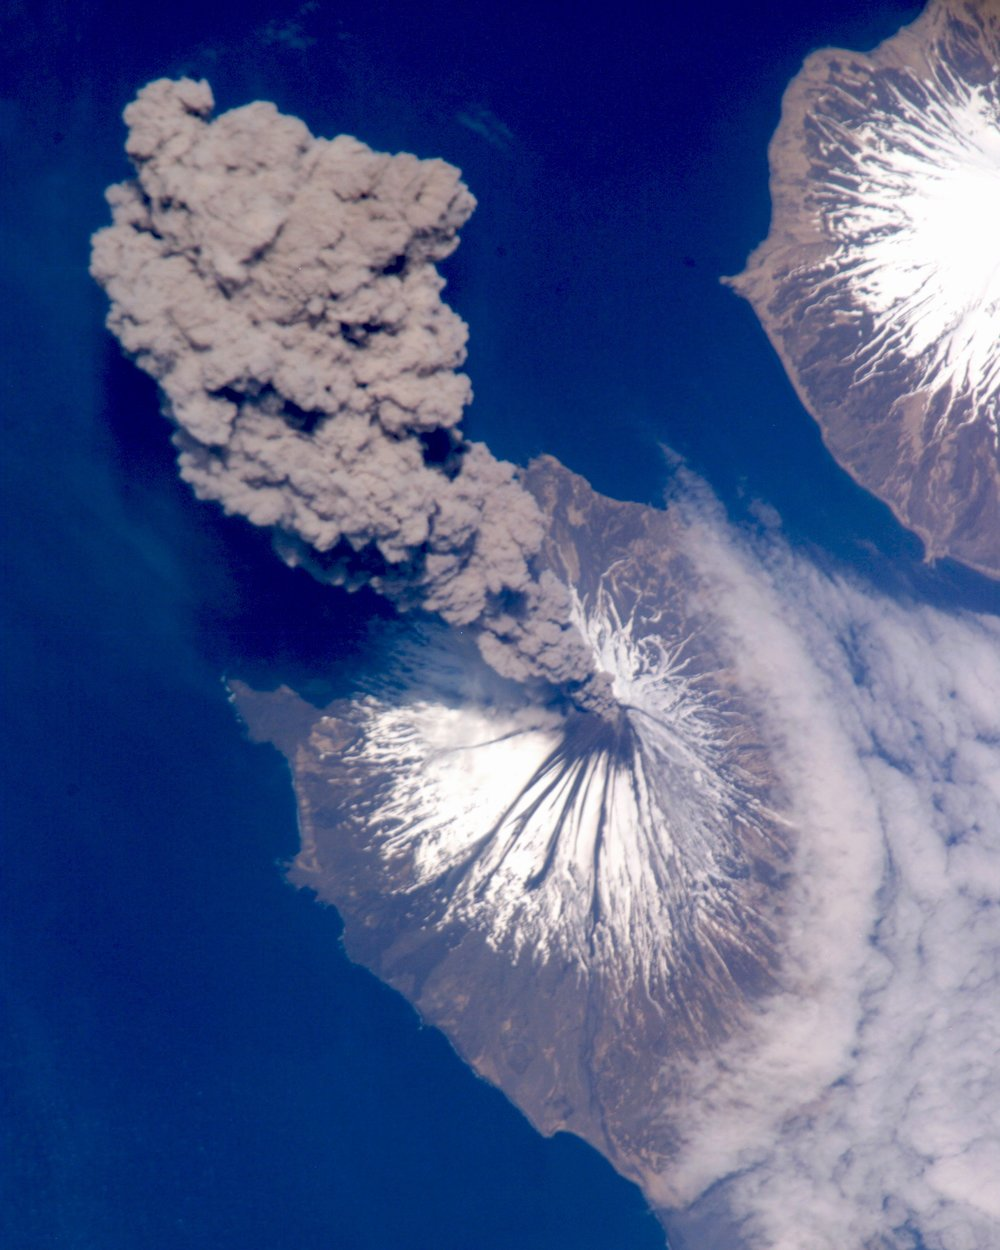 "Check out this incredible shot, which shows the eruption of Cleveland Volcano in Alaska's Aleutian Islands. It was captured in May 2006 by an Expedition 13 crew member aboard the International Space Station. Mount Cleveland is one of the most active volcanoes in the Aleutian Arc, having erupted an estimated 22 times in the last 230 years.  52°49'18.1""N 169°56'48.0""W  Image courtesy of: NASA"